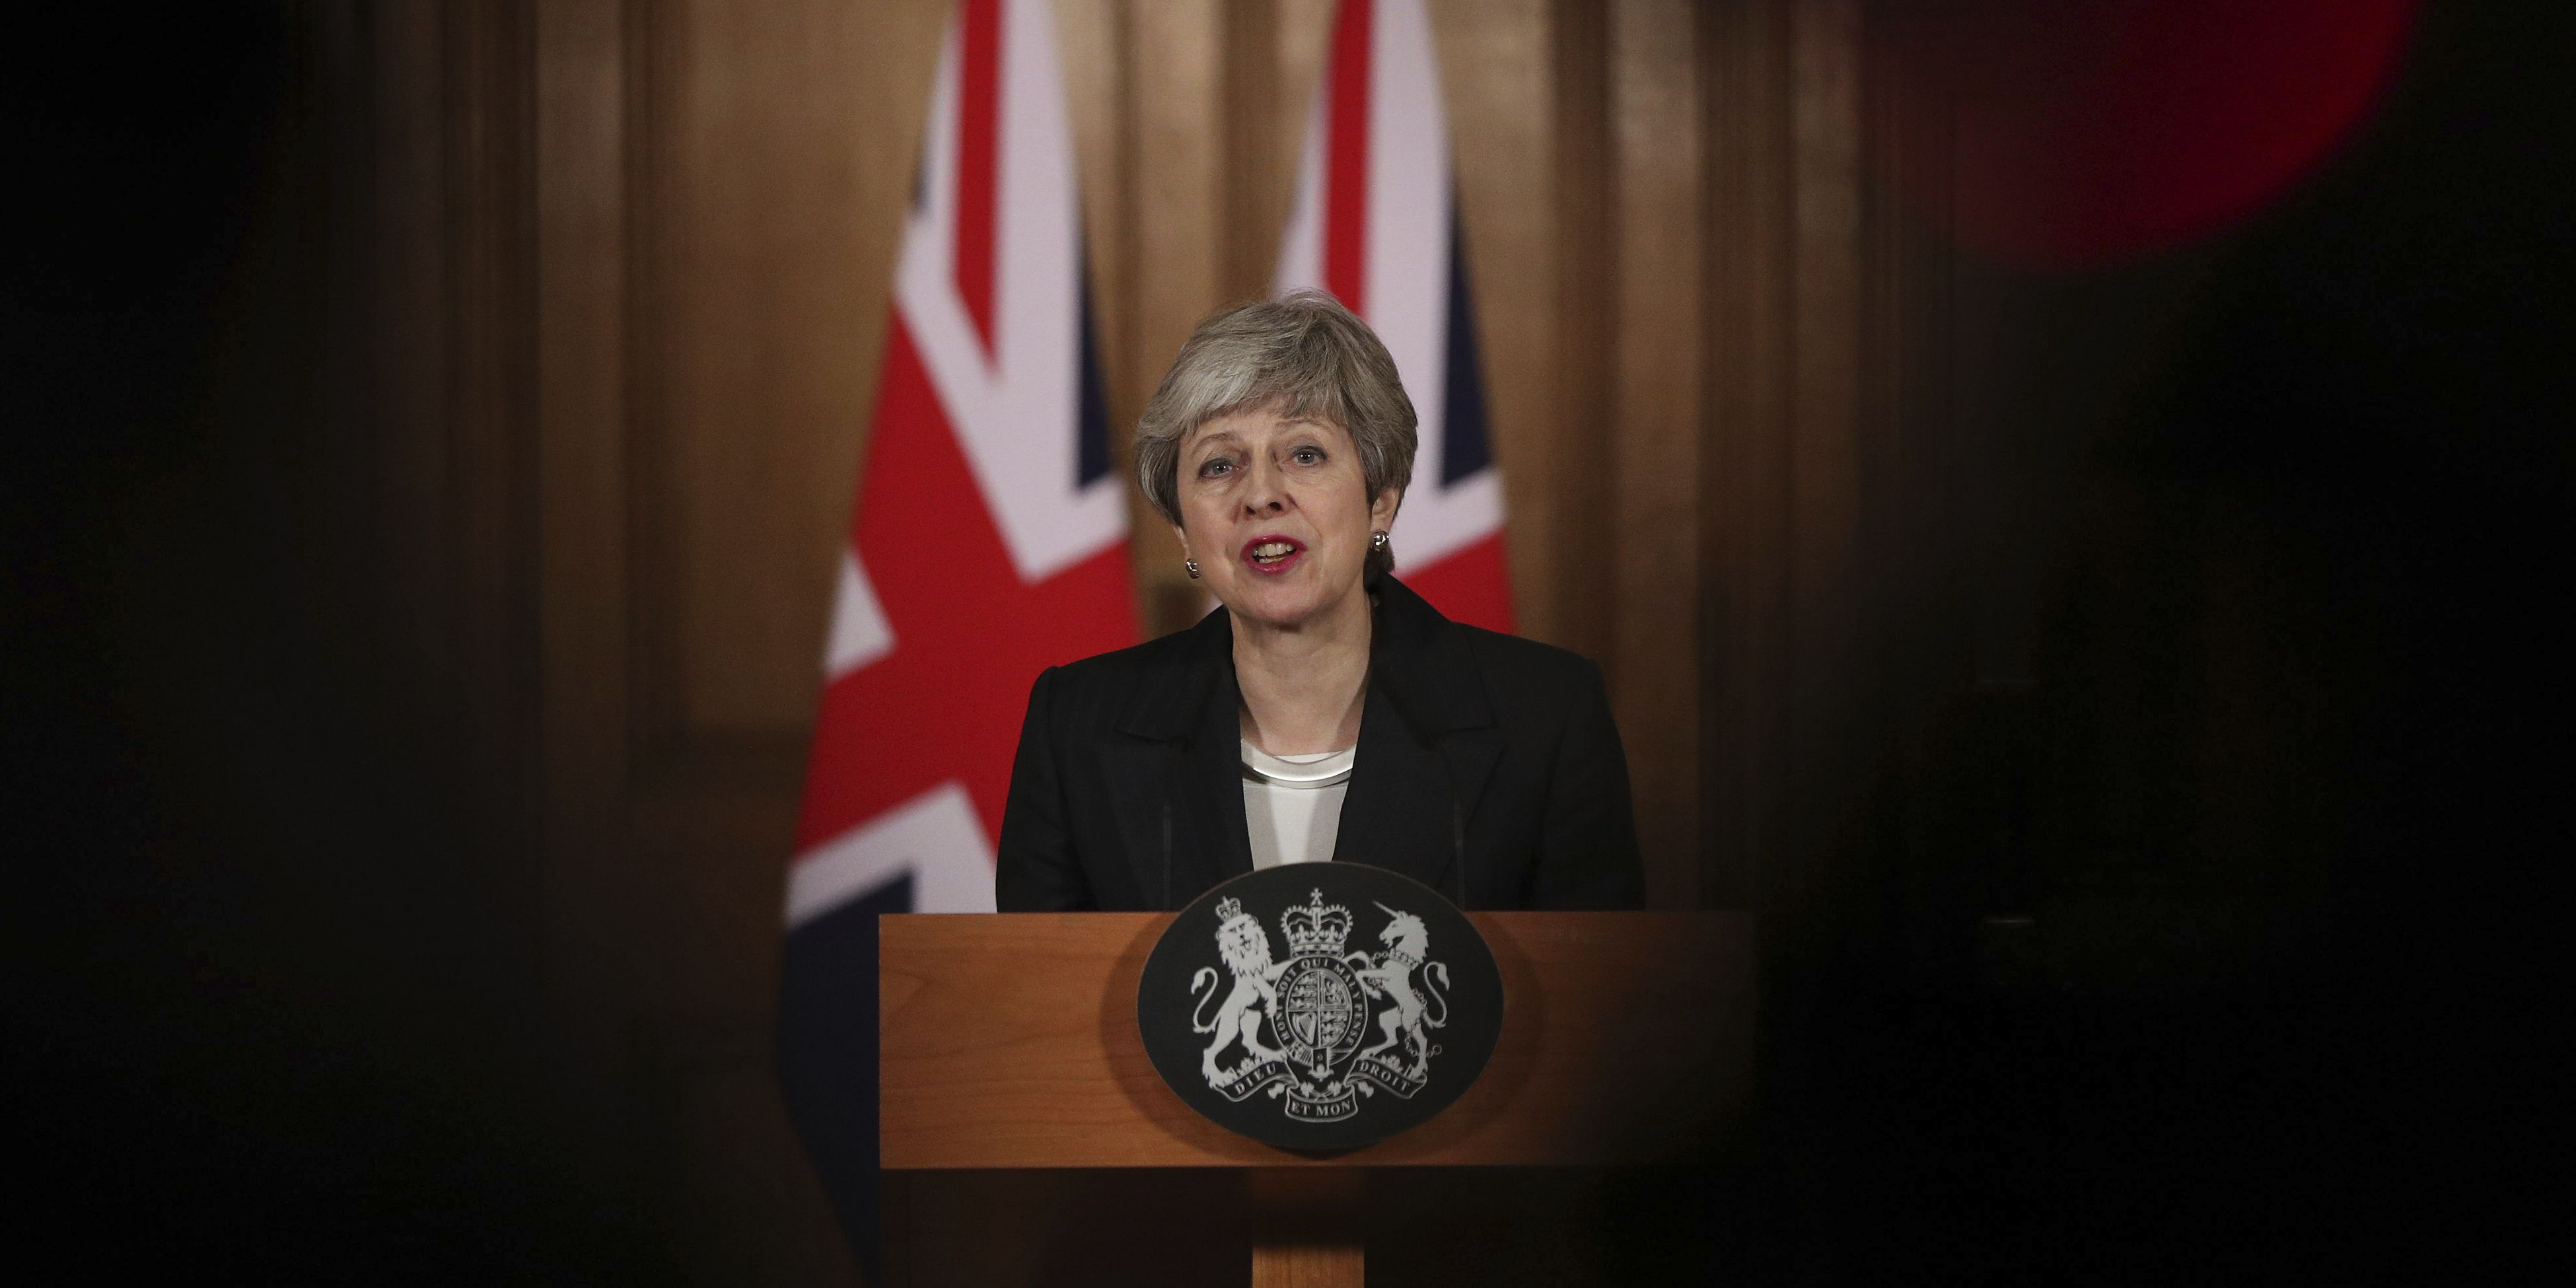 With Brexit 9 days away, Theresa May asks EU for delay, and possibility of messy no-deal departure looms